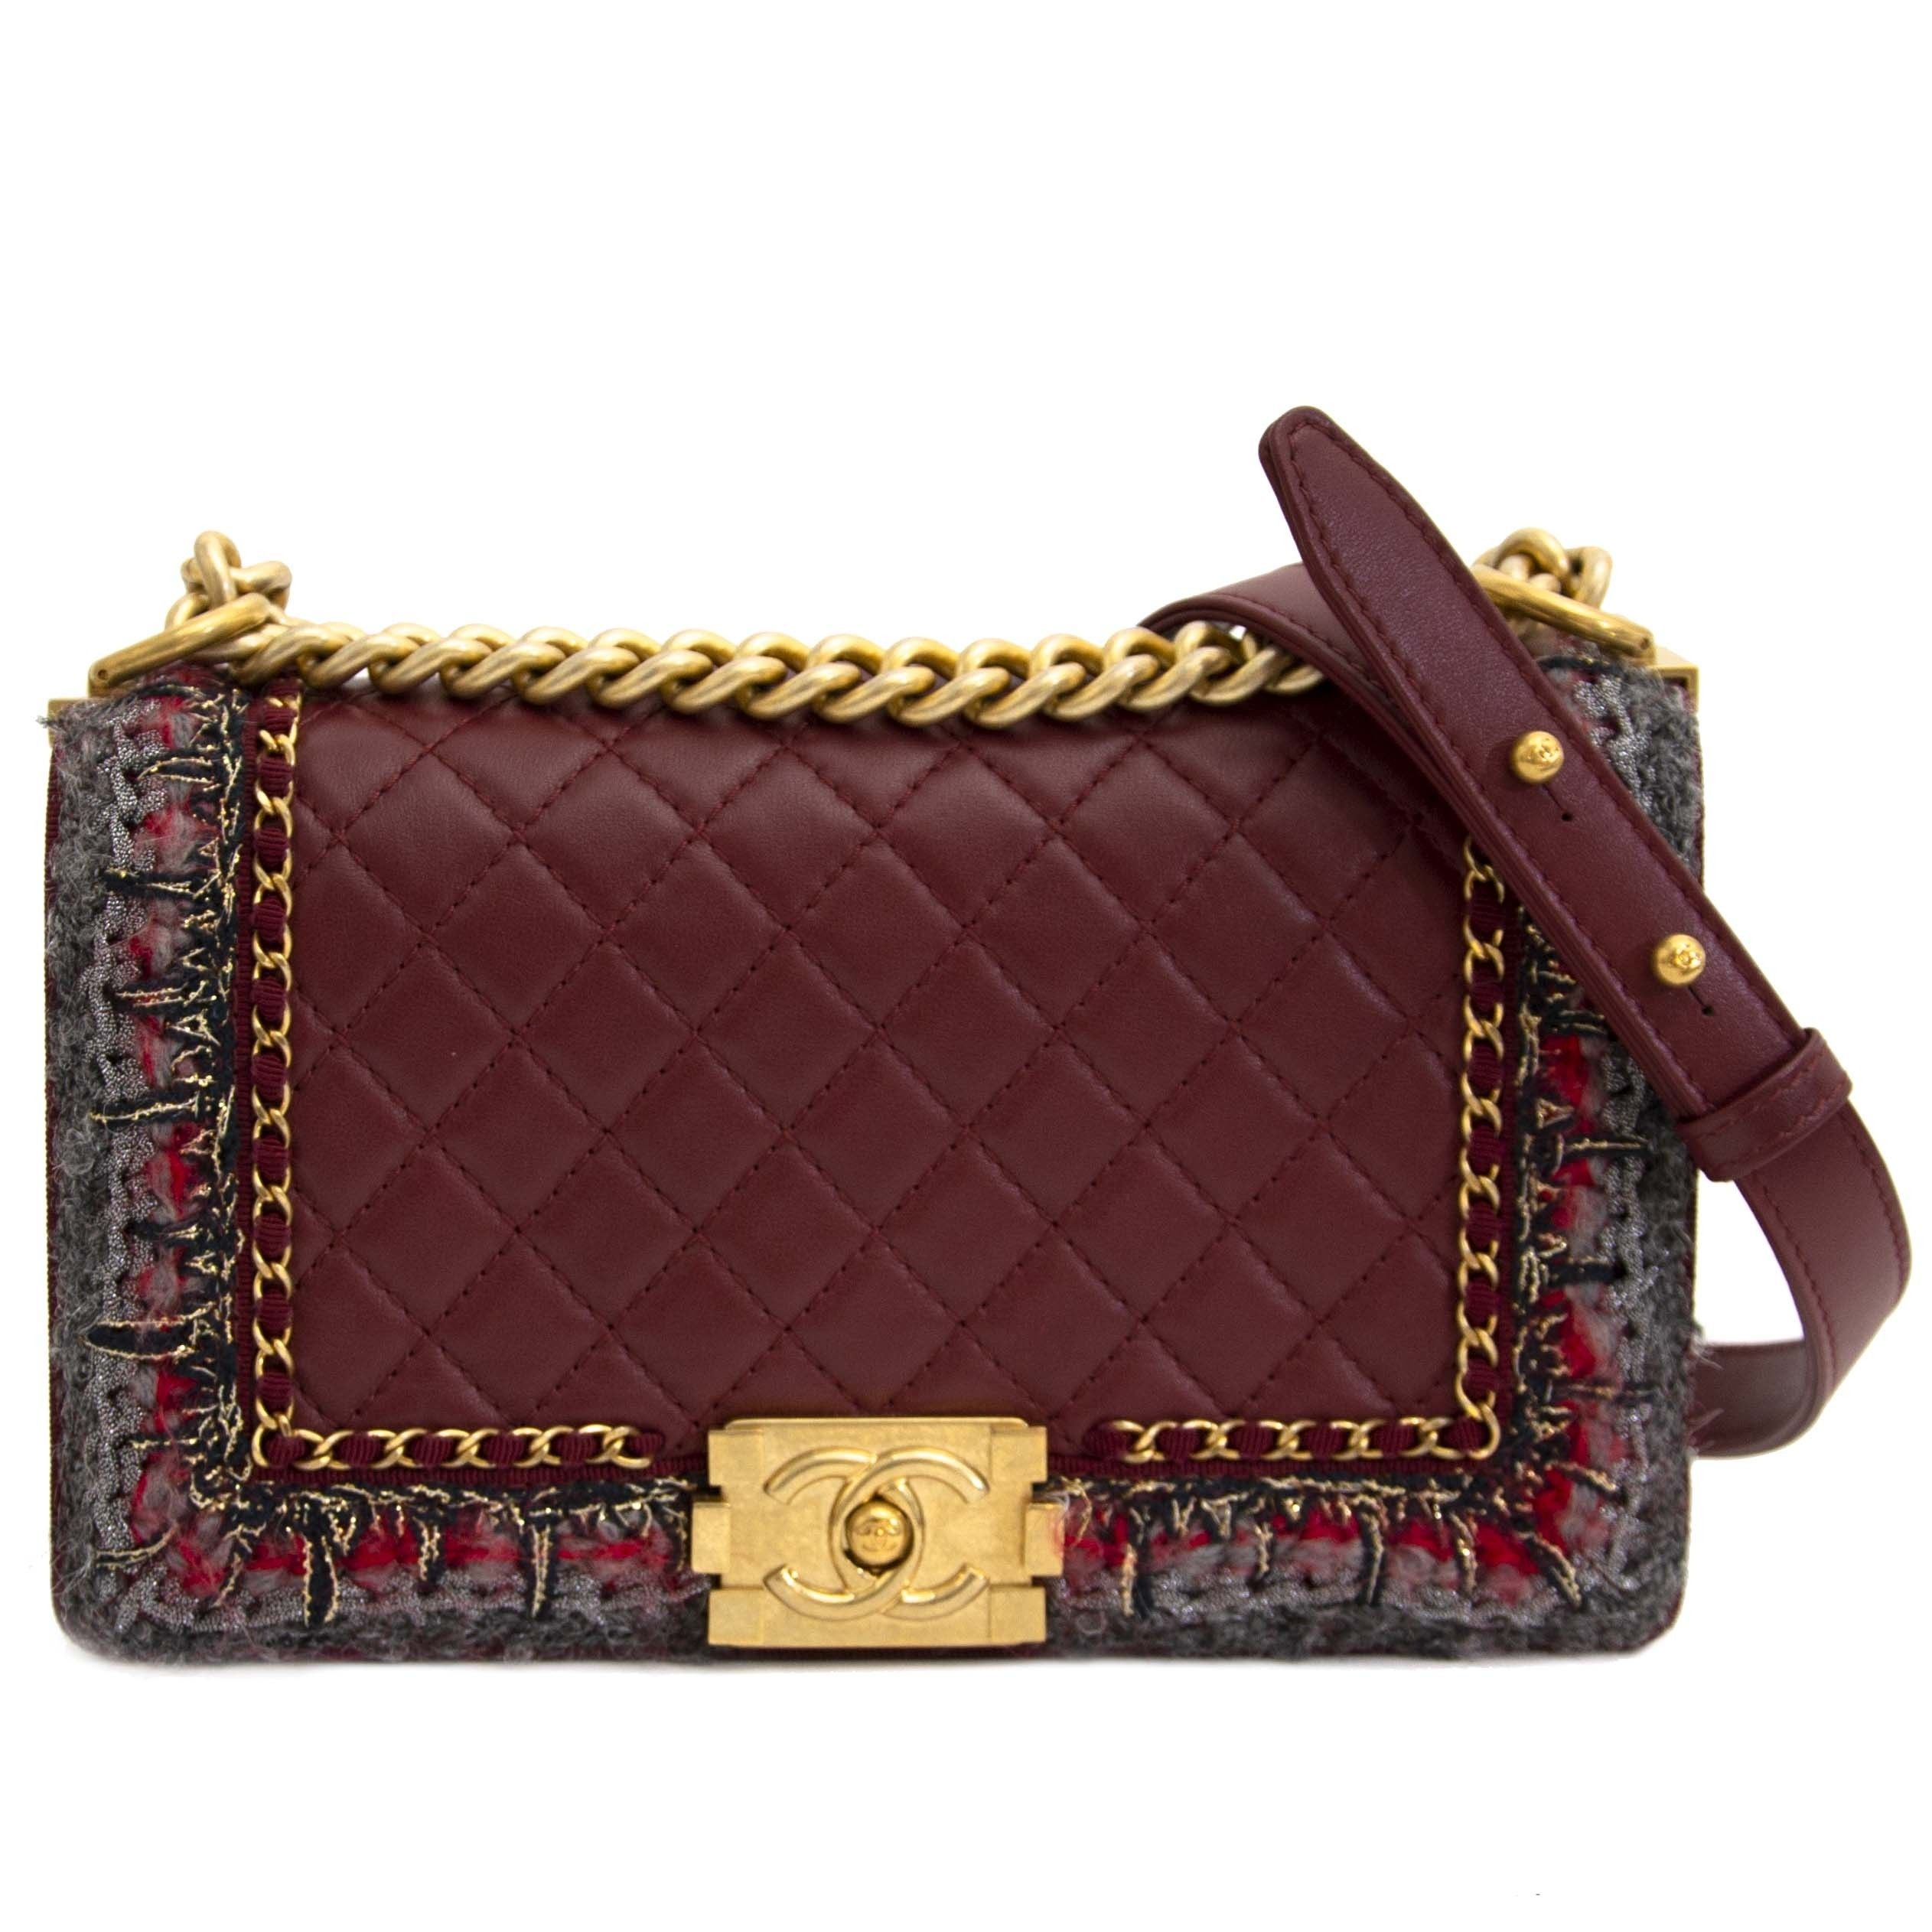 791d3eea3fbb Chanel Medium Boy Bag Burgundy Tweed | We LOV Chanel in 2019 ...